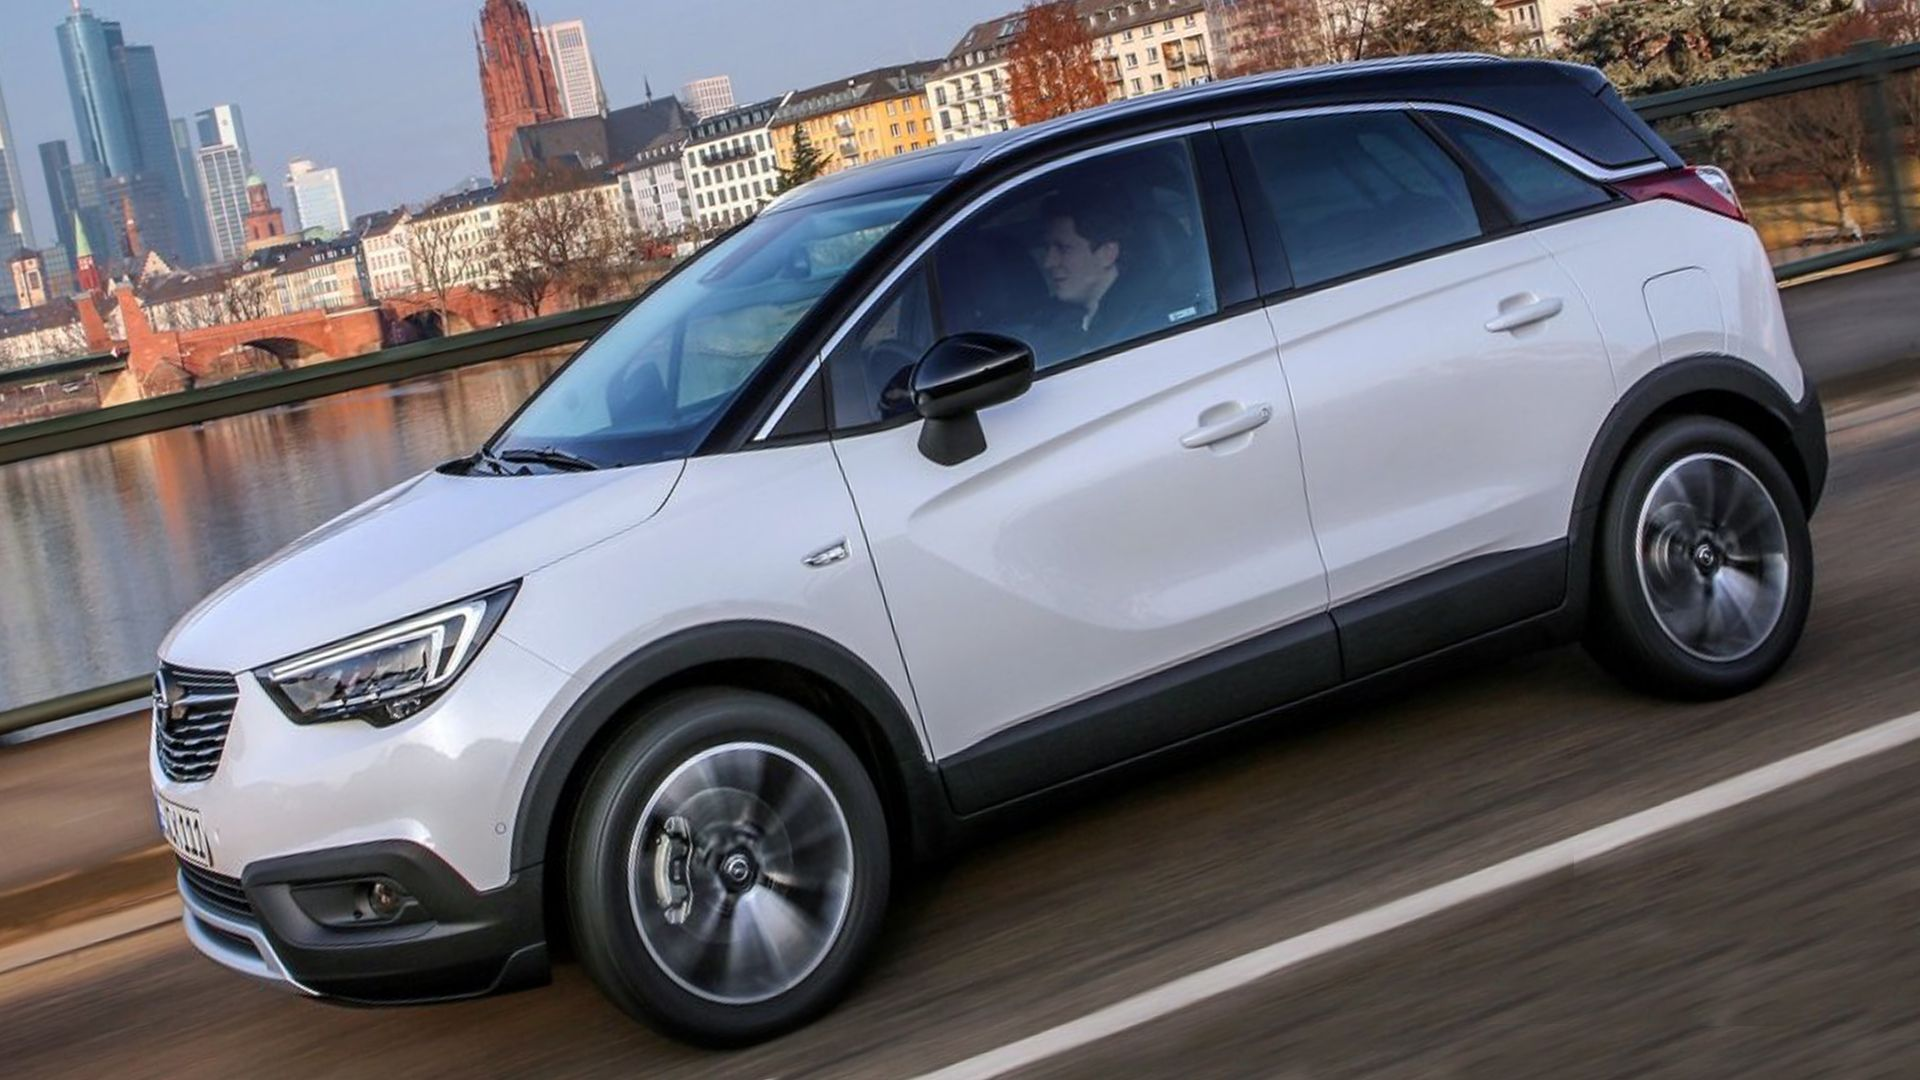 2019 Opel Crossland X Exterior Changes Opel Top Cars Car